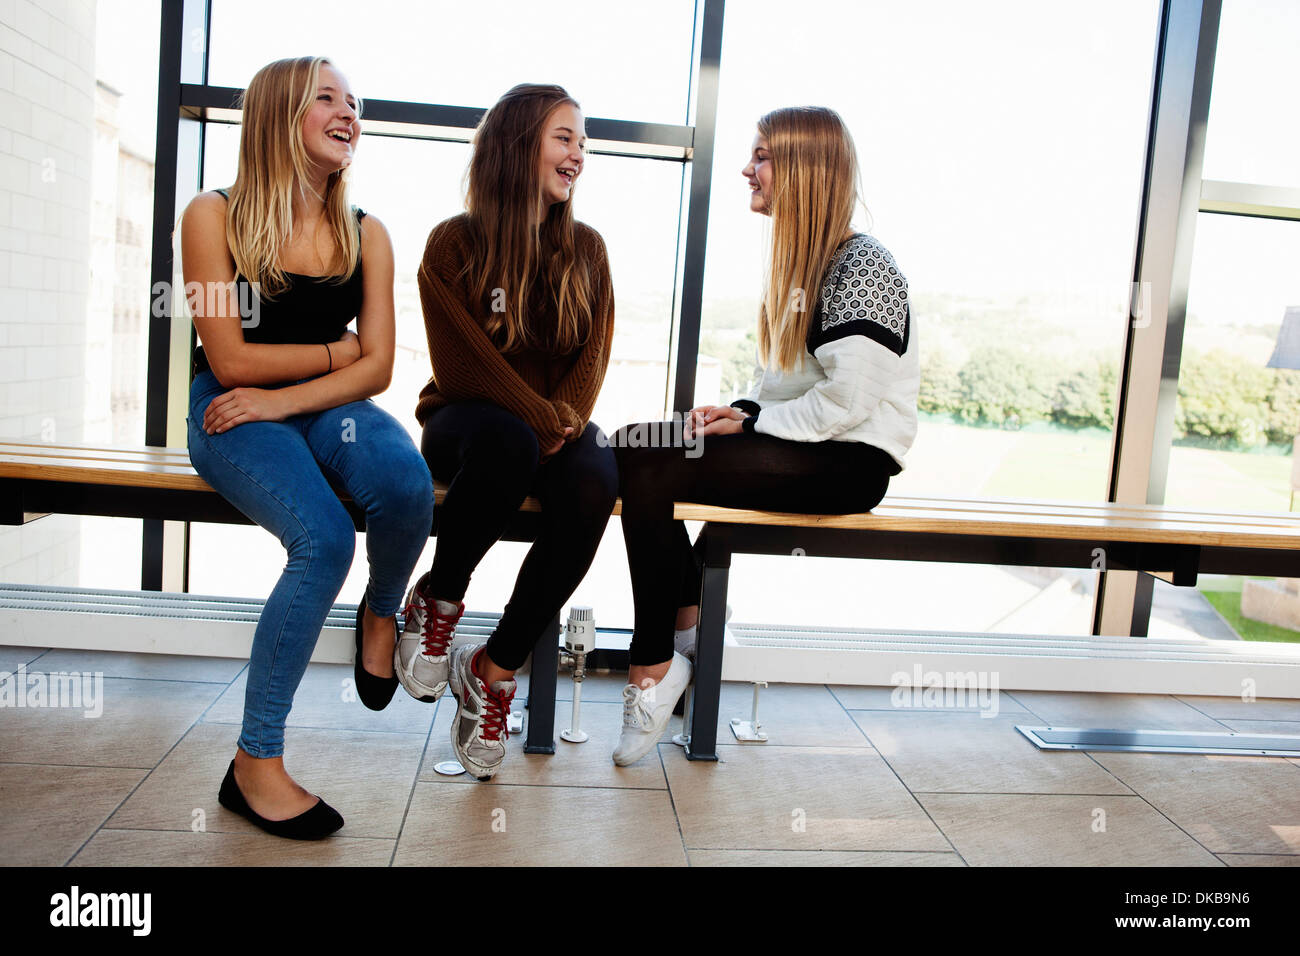 Three teenage schoolgirls sitting chatting in corridor - Stock Image